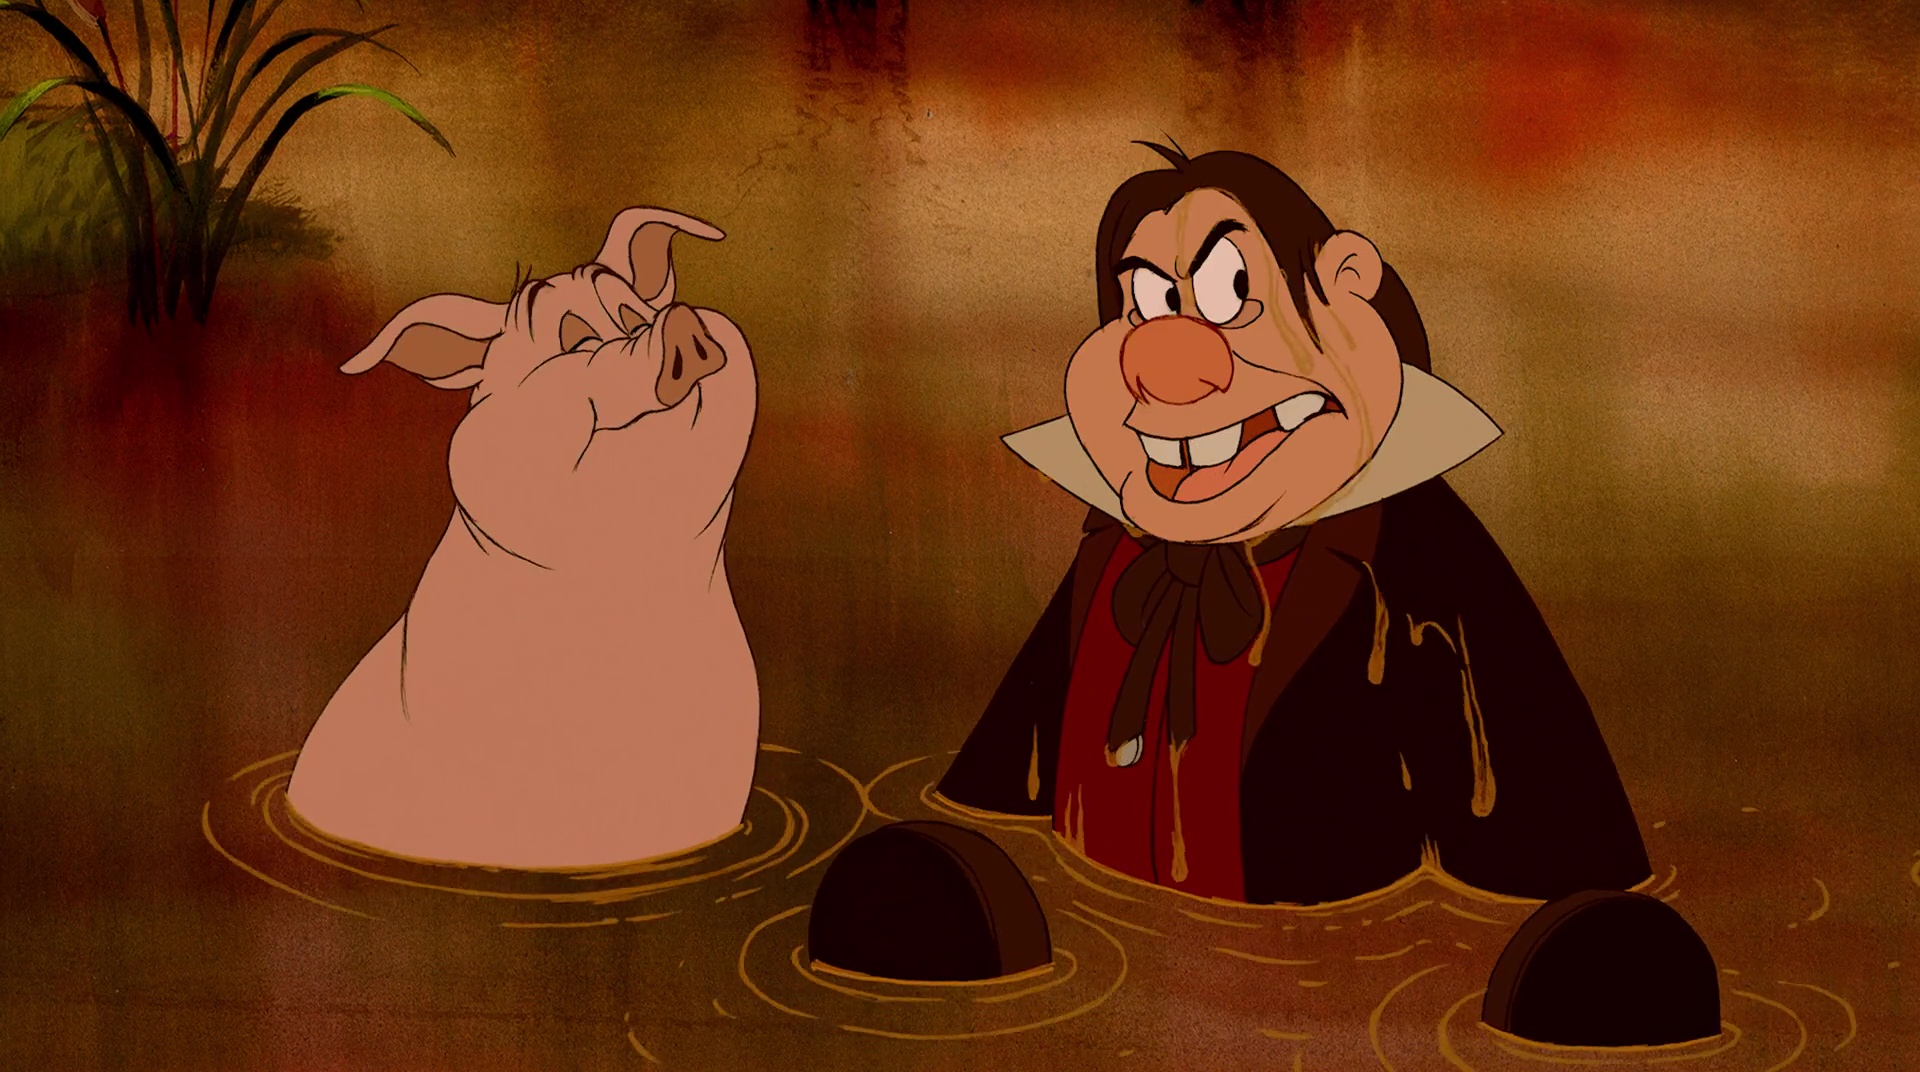 pierre pig personnage character disney la belle et la bête beauty and the beast